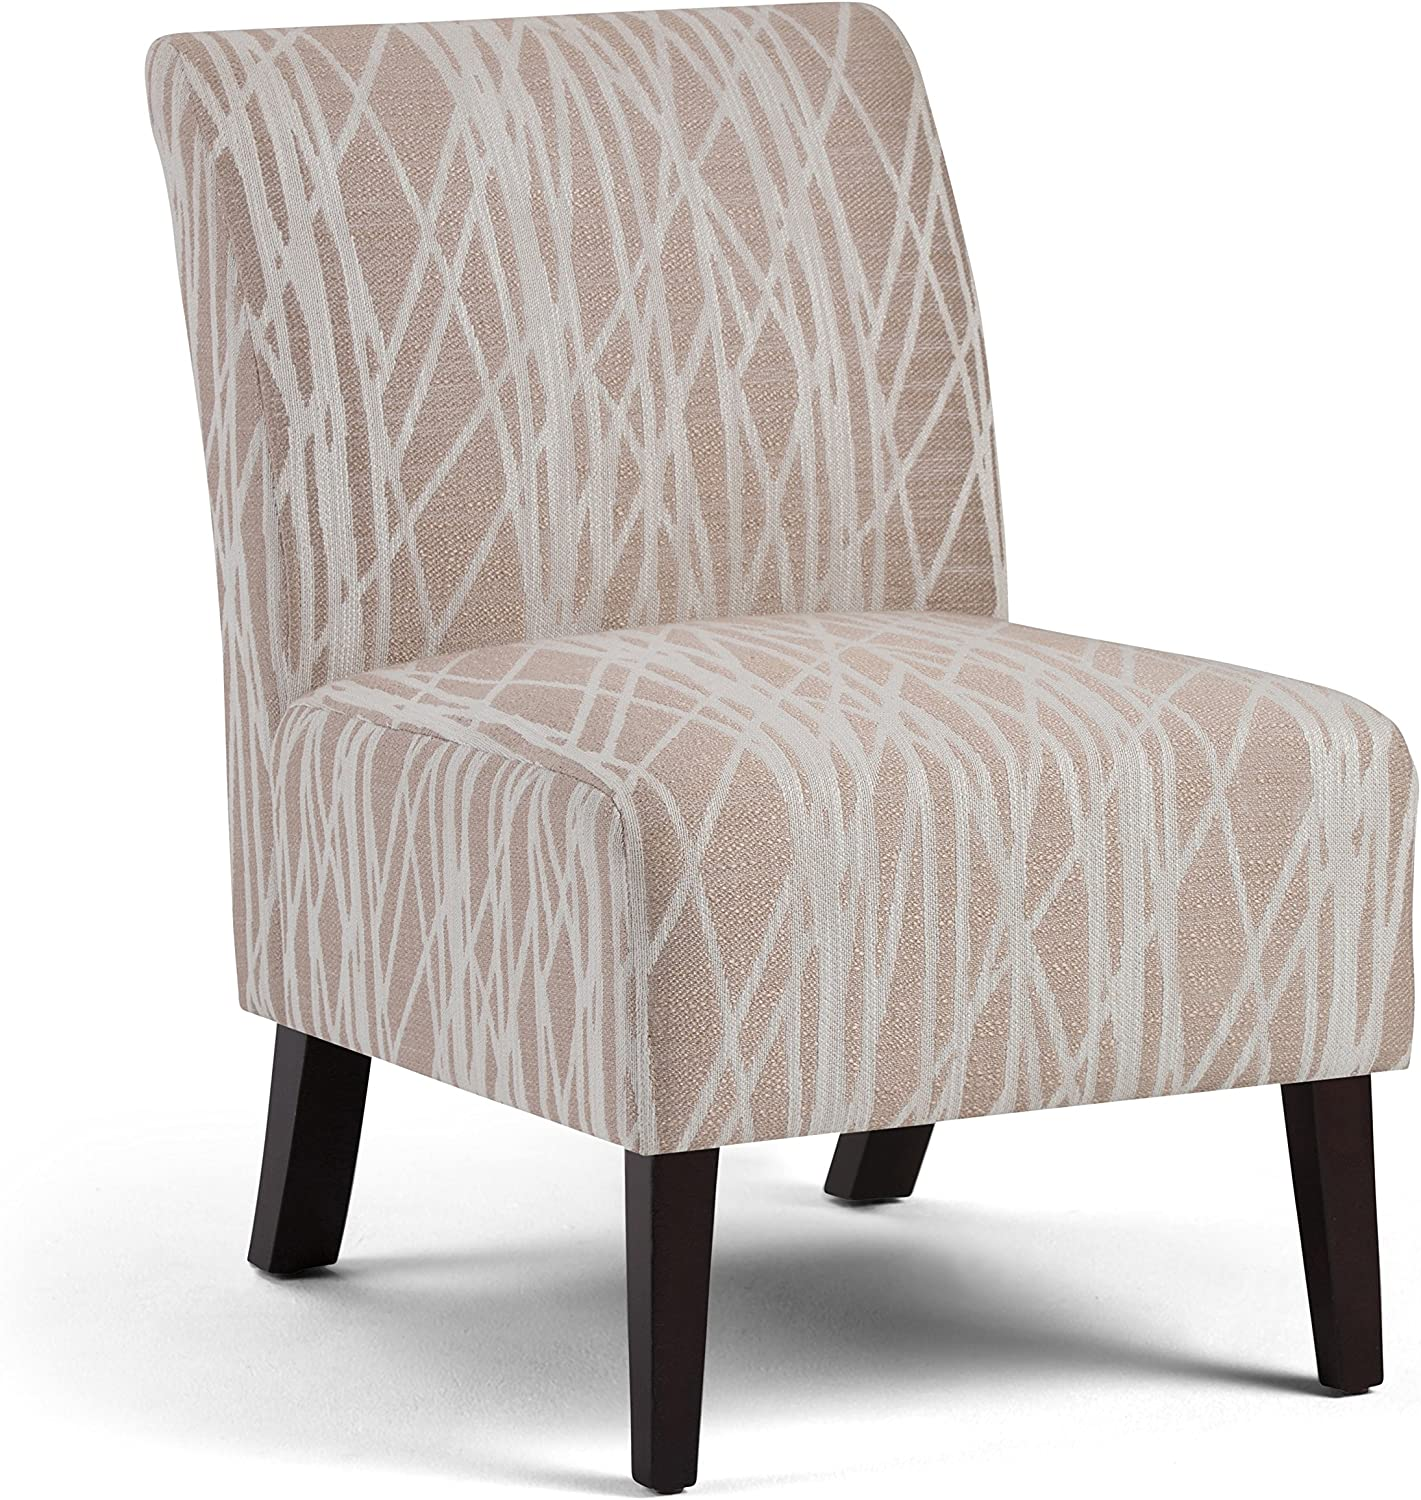 Simpli Home AXCCHR-008-BG Woodford 22 inch Wide Transitional Accent Chair in Beige, White Patterned Fabric